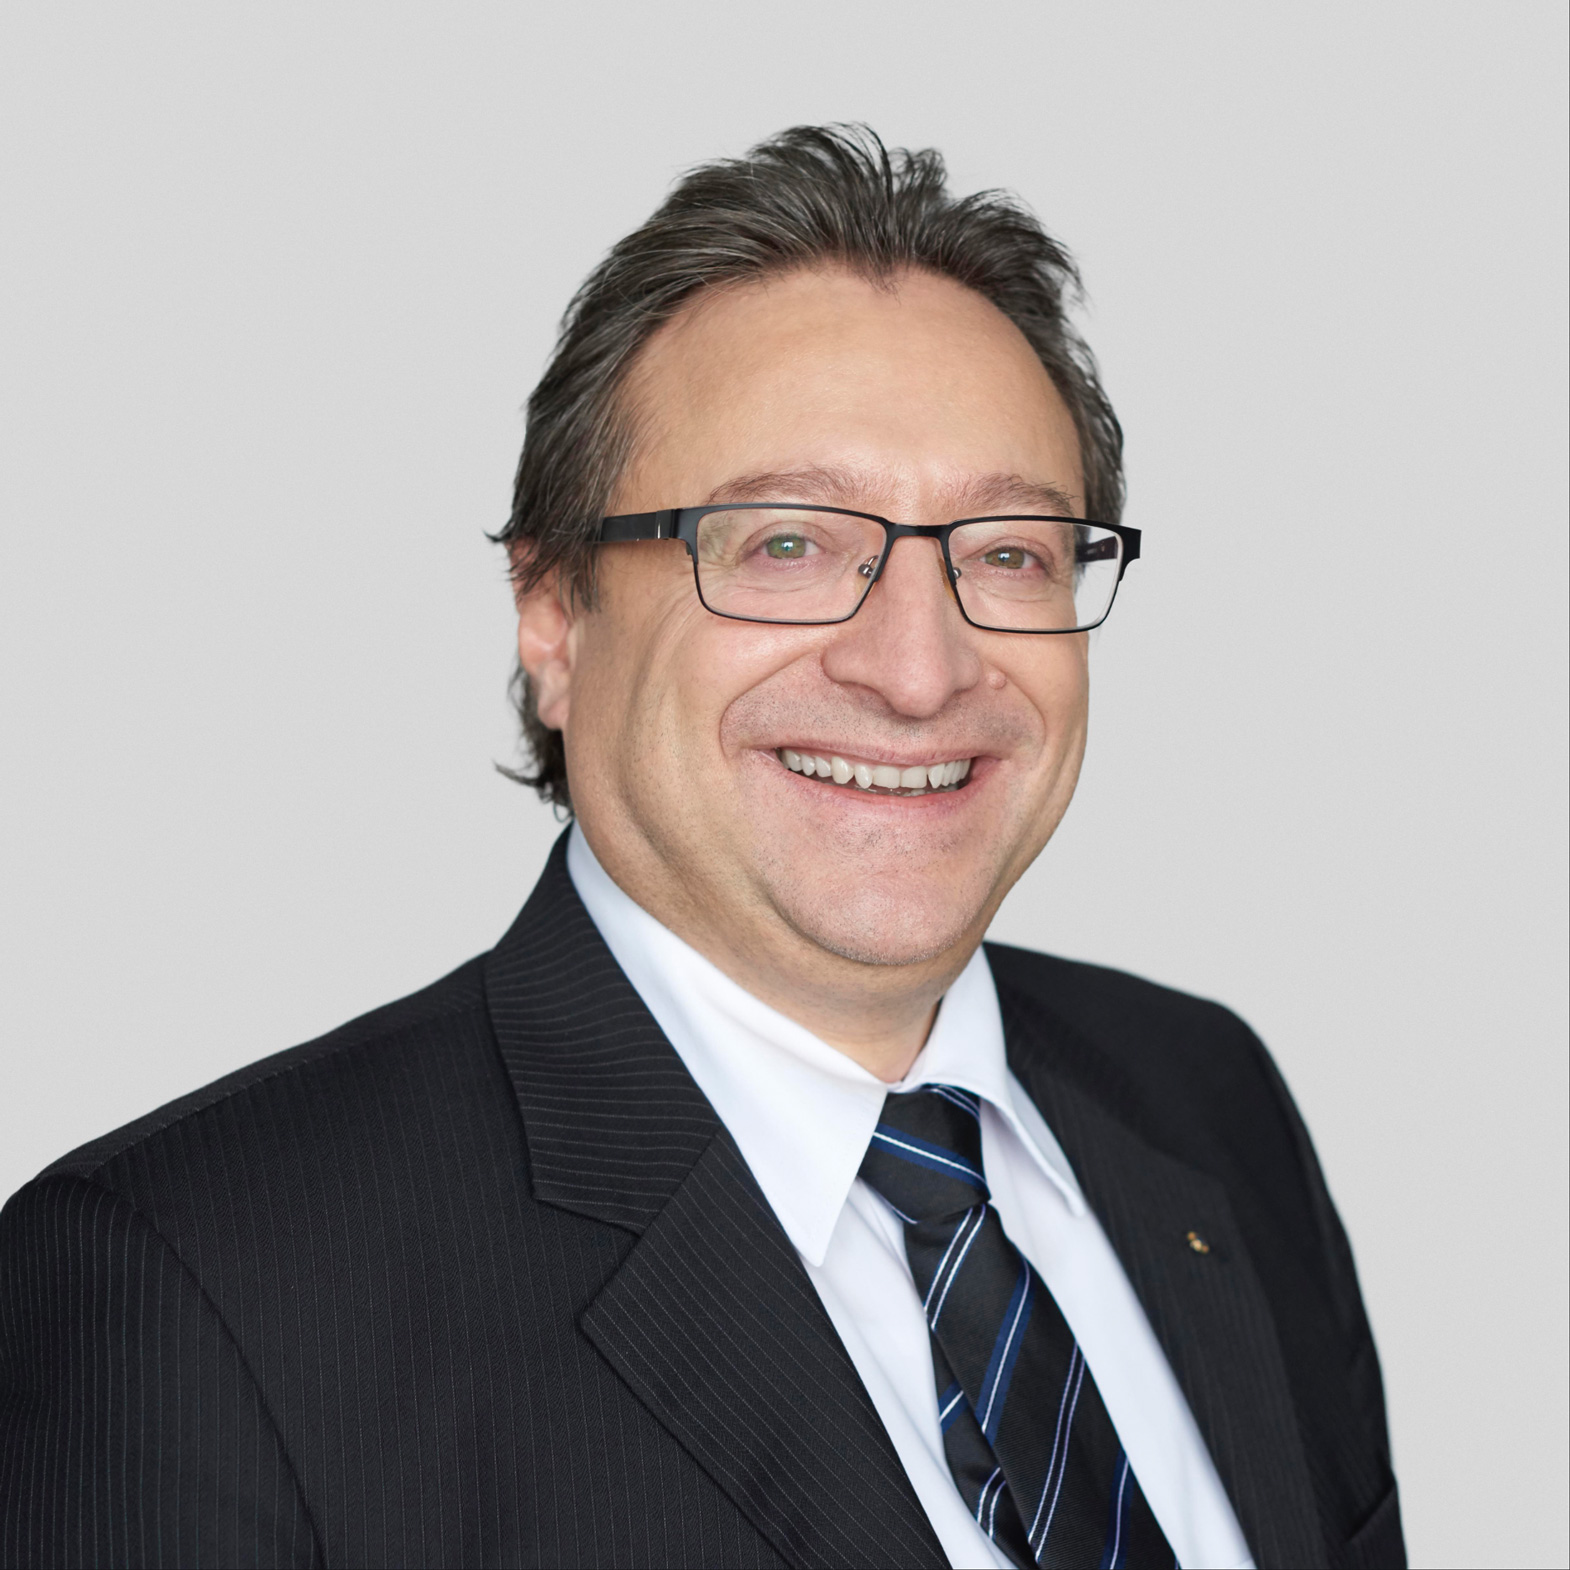 Bruno Tringaniello  (*1965)  Member of the board  · Swiss Certified Public Accountant specialized in tax counselling  · Master of Advanced Studies (MAS) in Business Law  · Licensed Audit Expert by the FAOA  · Member of EXPERTsuisse, Swiss Institute of Certified Accountants and Tax Experts  · Member of the chamber of admitted tax consultants Südbaden